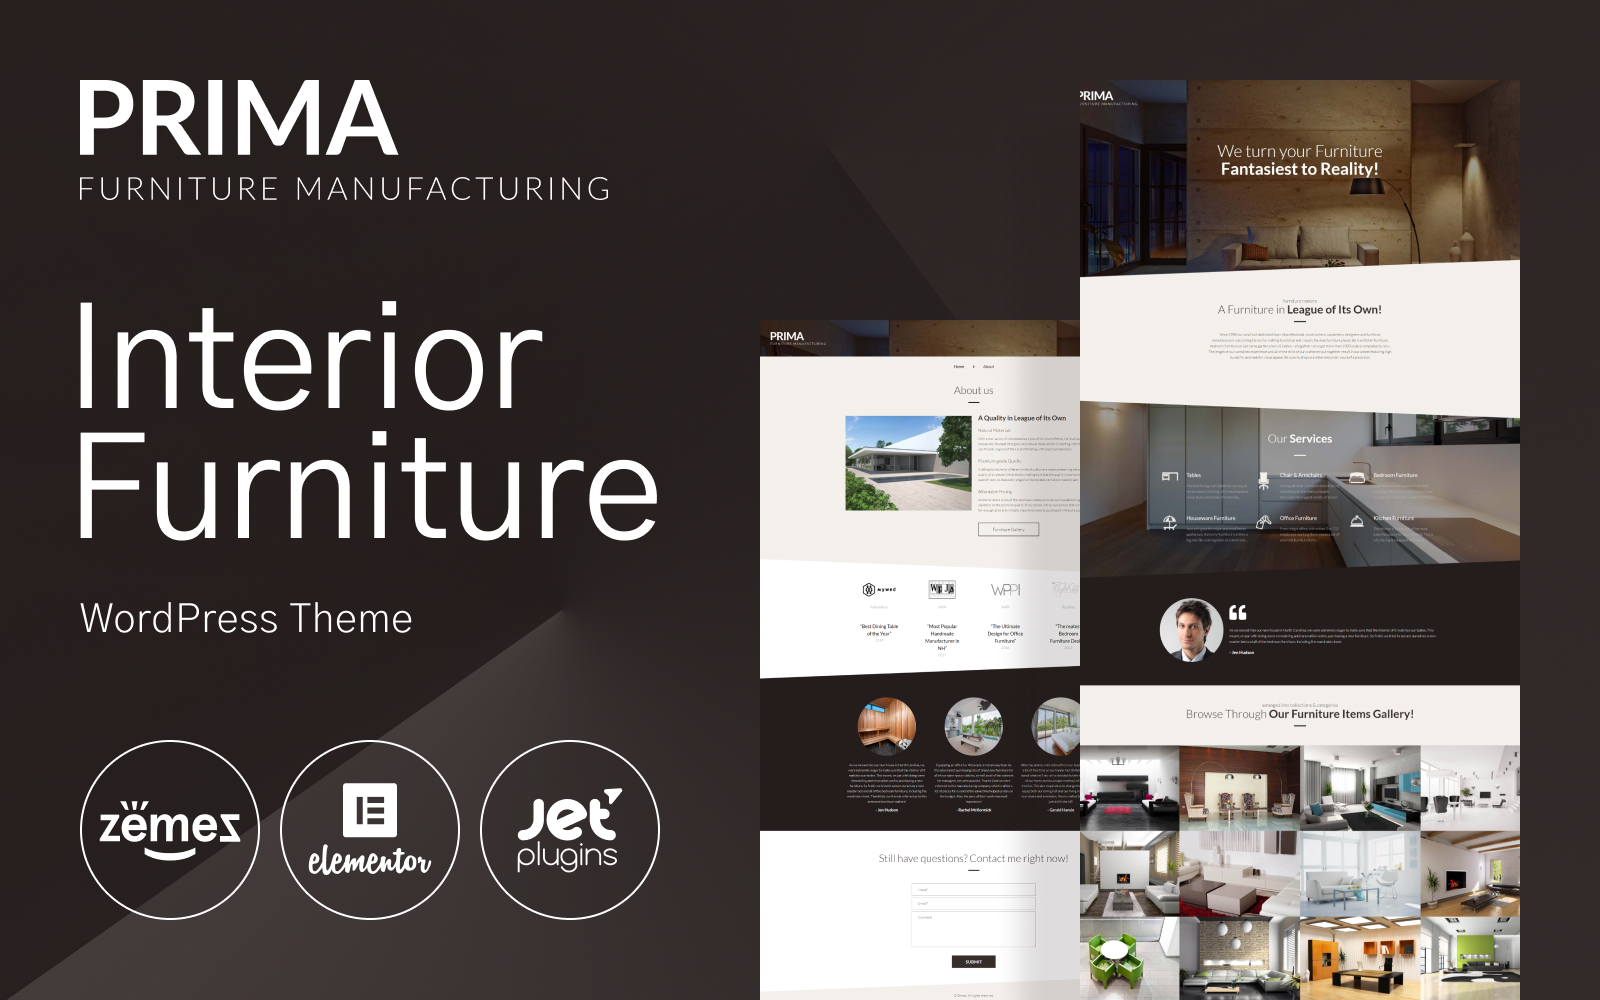 Interior Furniture WordPress Theme - Prima Tema WordPress №53145